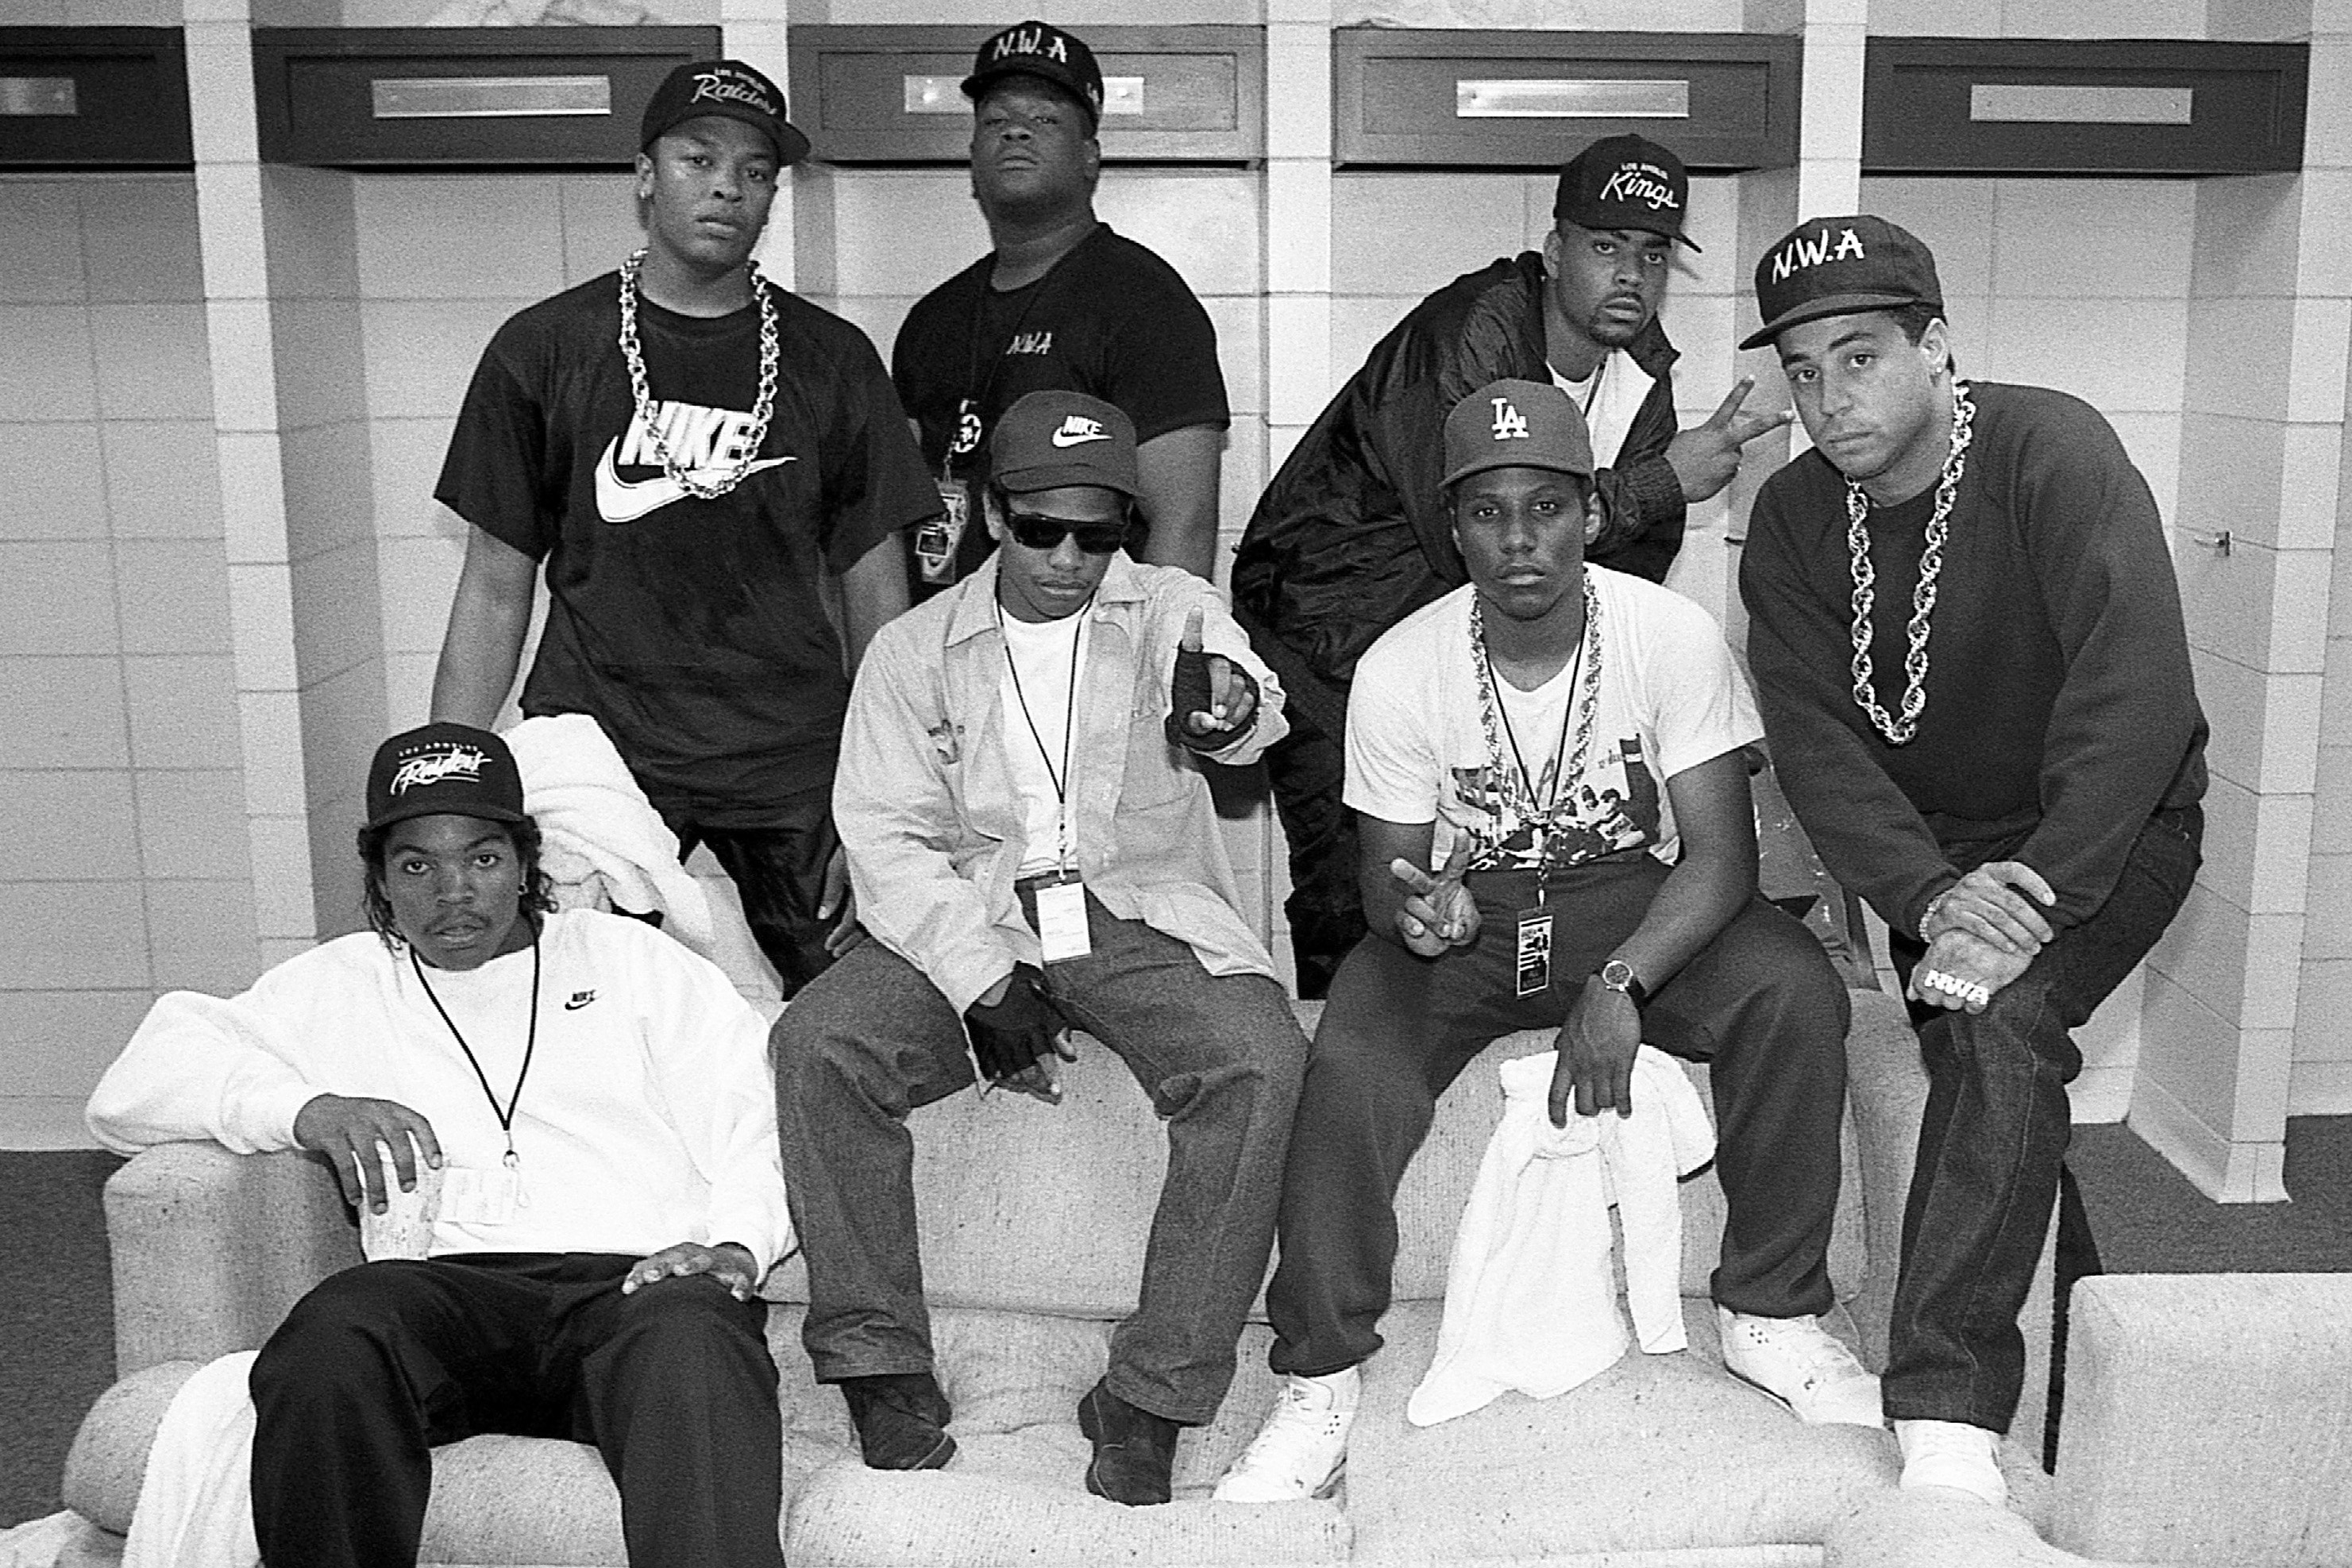 N.W.A's 'Straight Outta Compton': 12 Things You Didn't Know - Rolling Stone